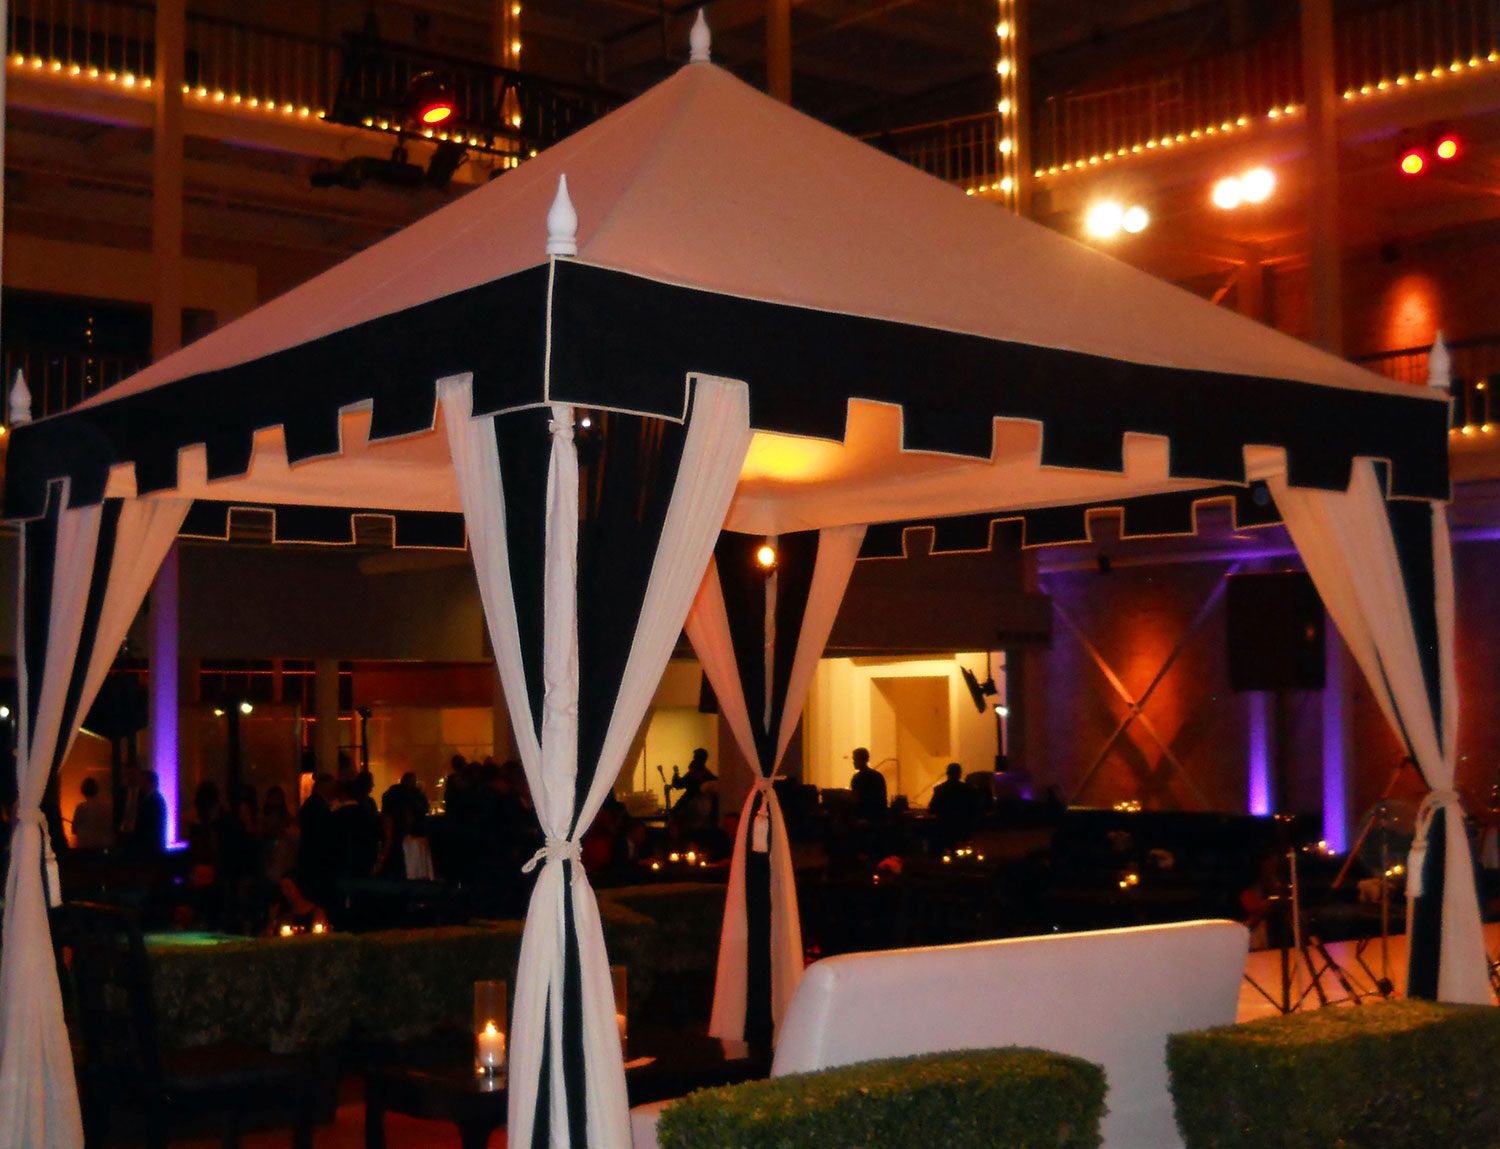 raj-tents-black-and-white-roman-key-pergola.jpg